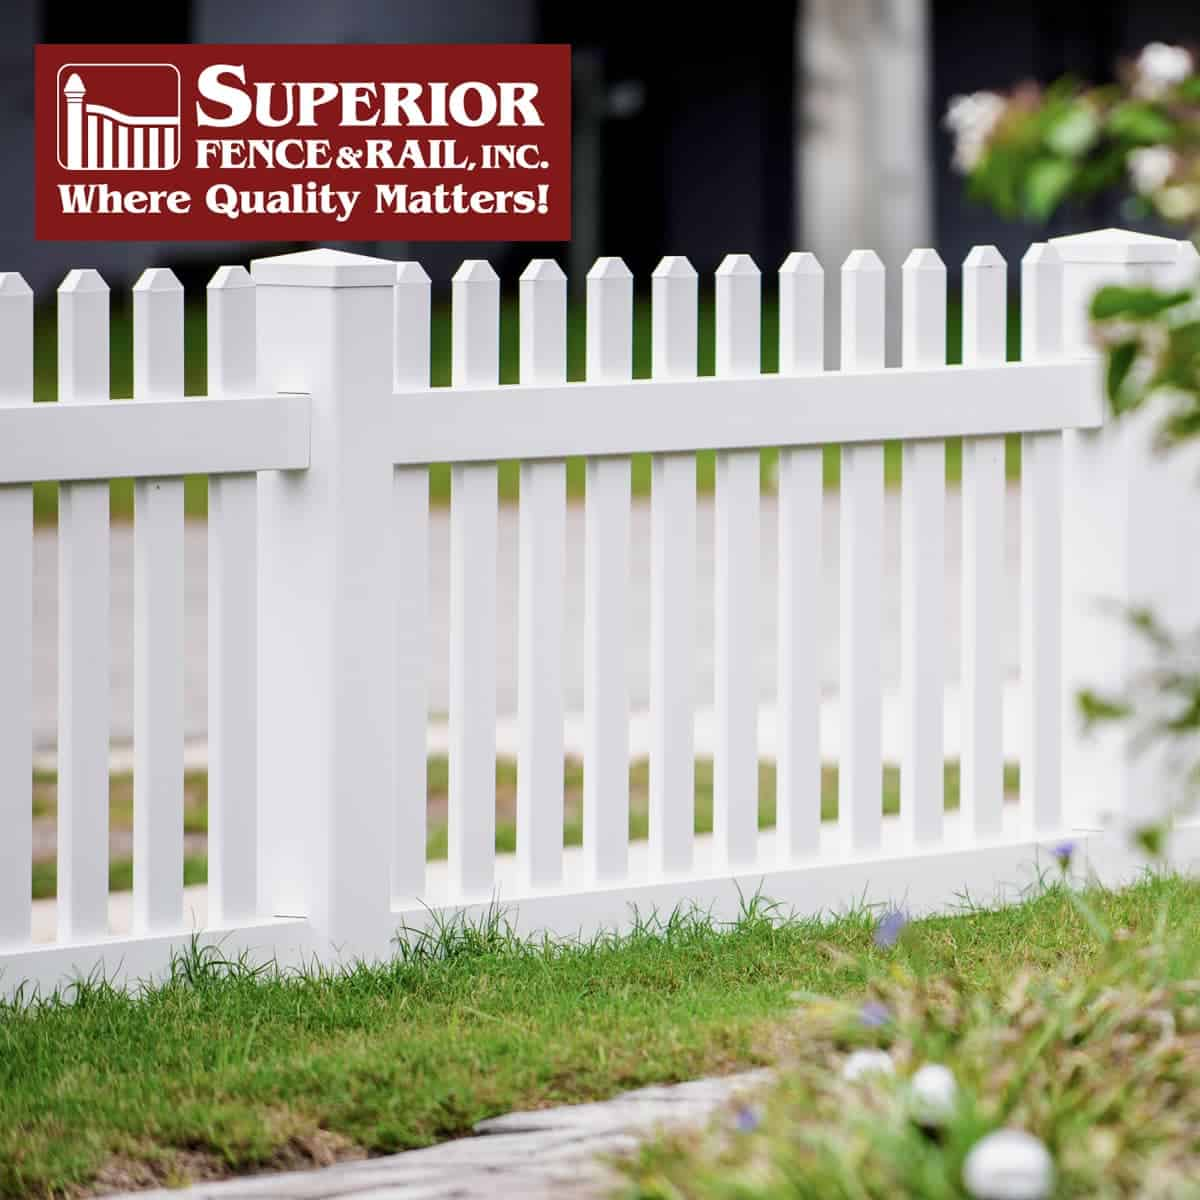 Lake Wylie fence company contractor